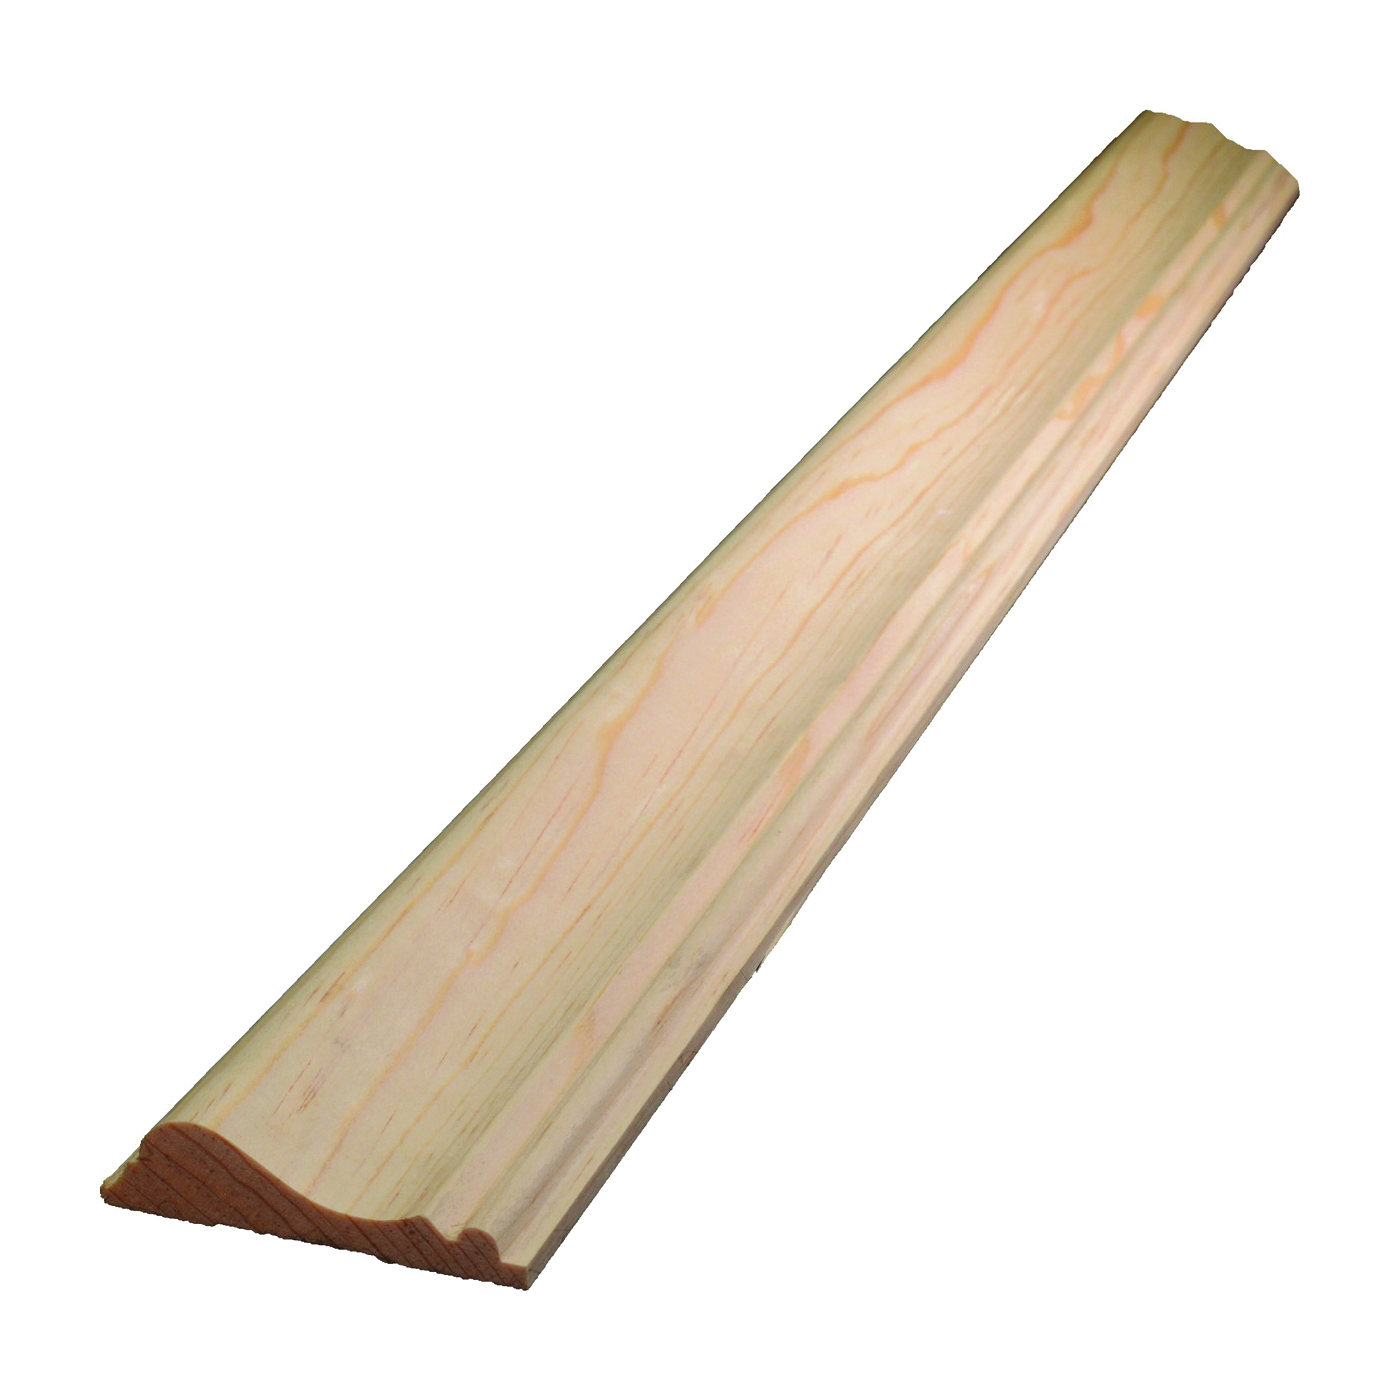 Picture of ALEXANDRIA Moulding 0W390-20096C1 Chair Rail Trim, 96 in L, 2-5/8 in W, 11/16 in Thick, Pine